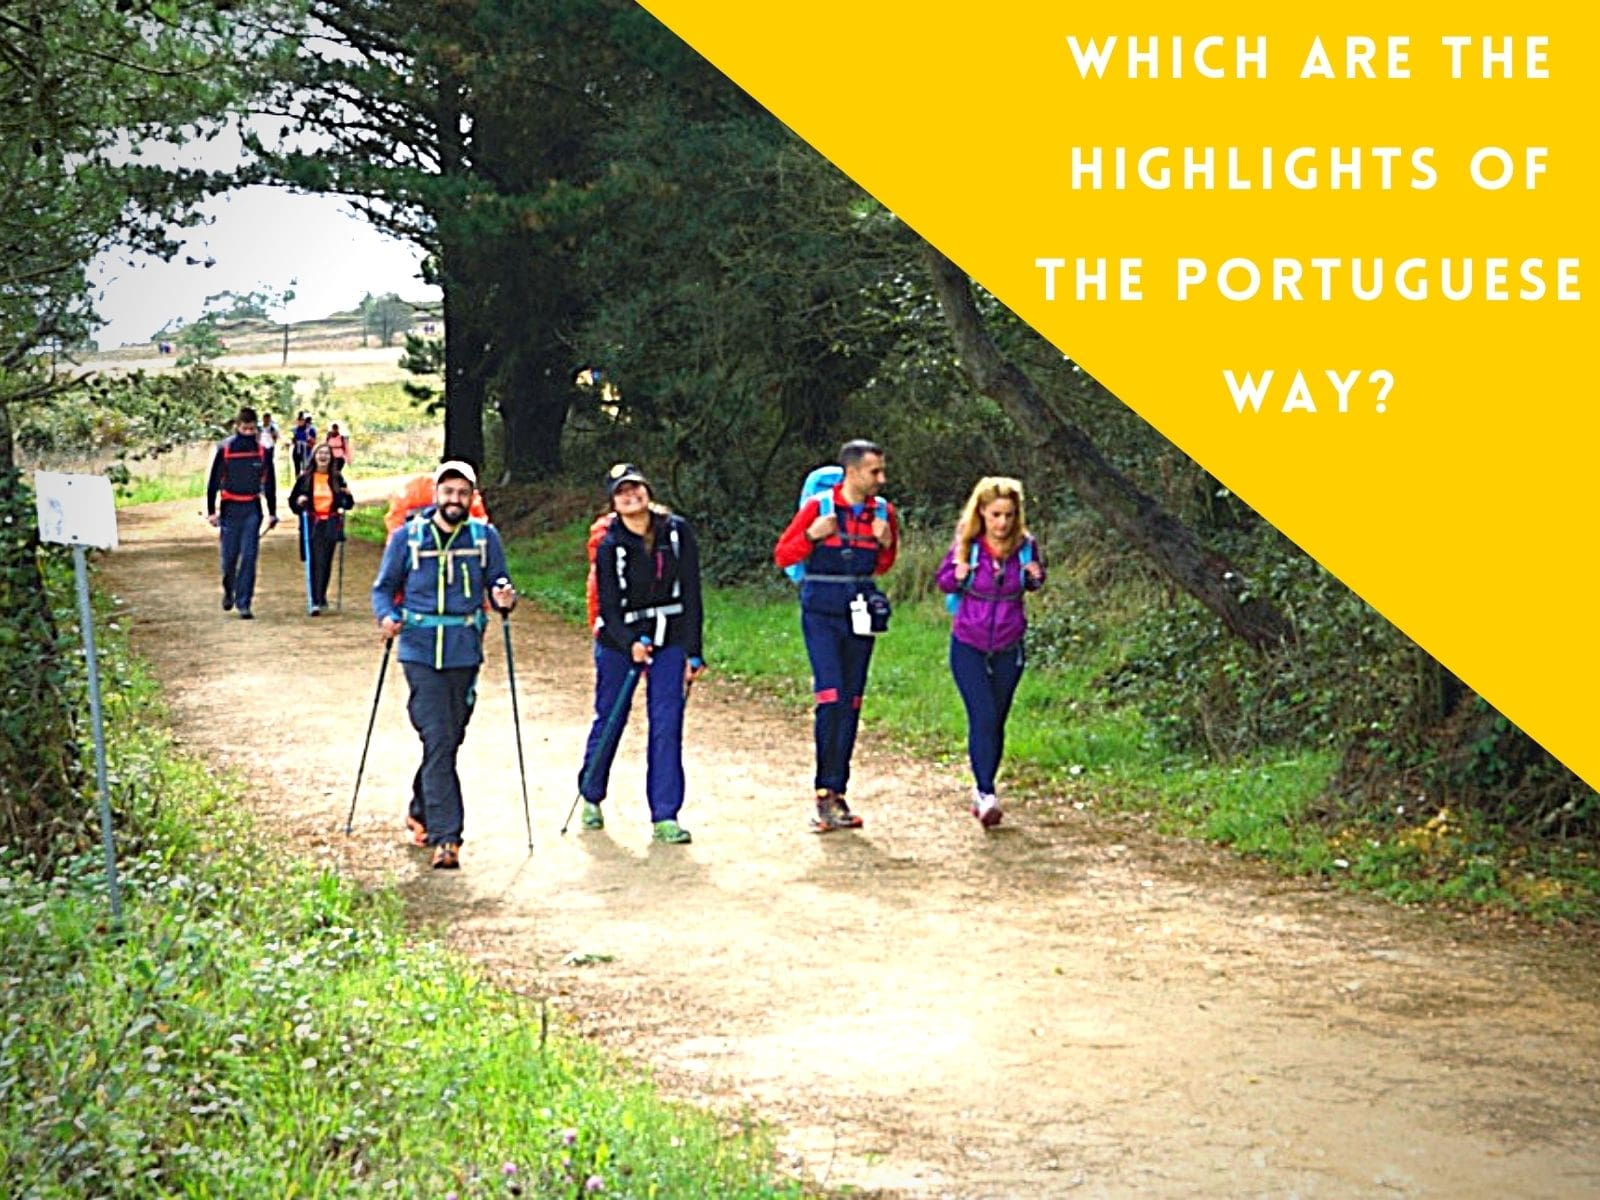 Which are the highlights of the Portuguese Way?